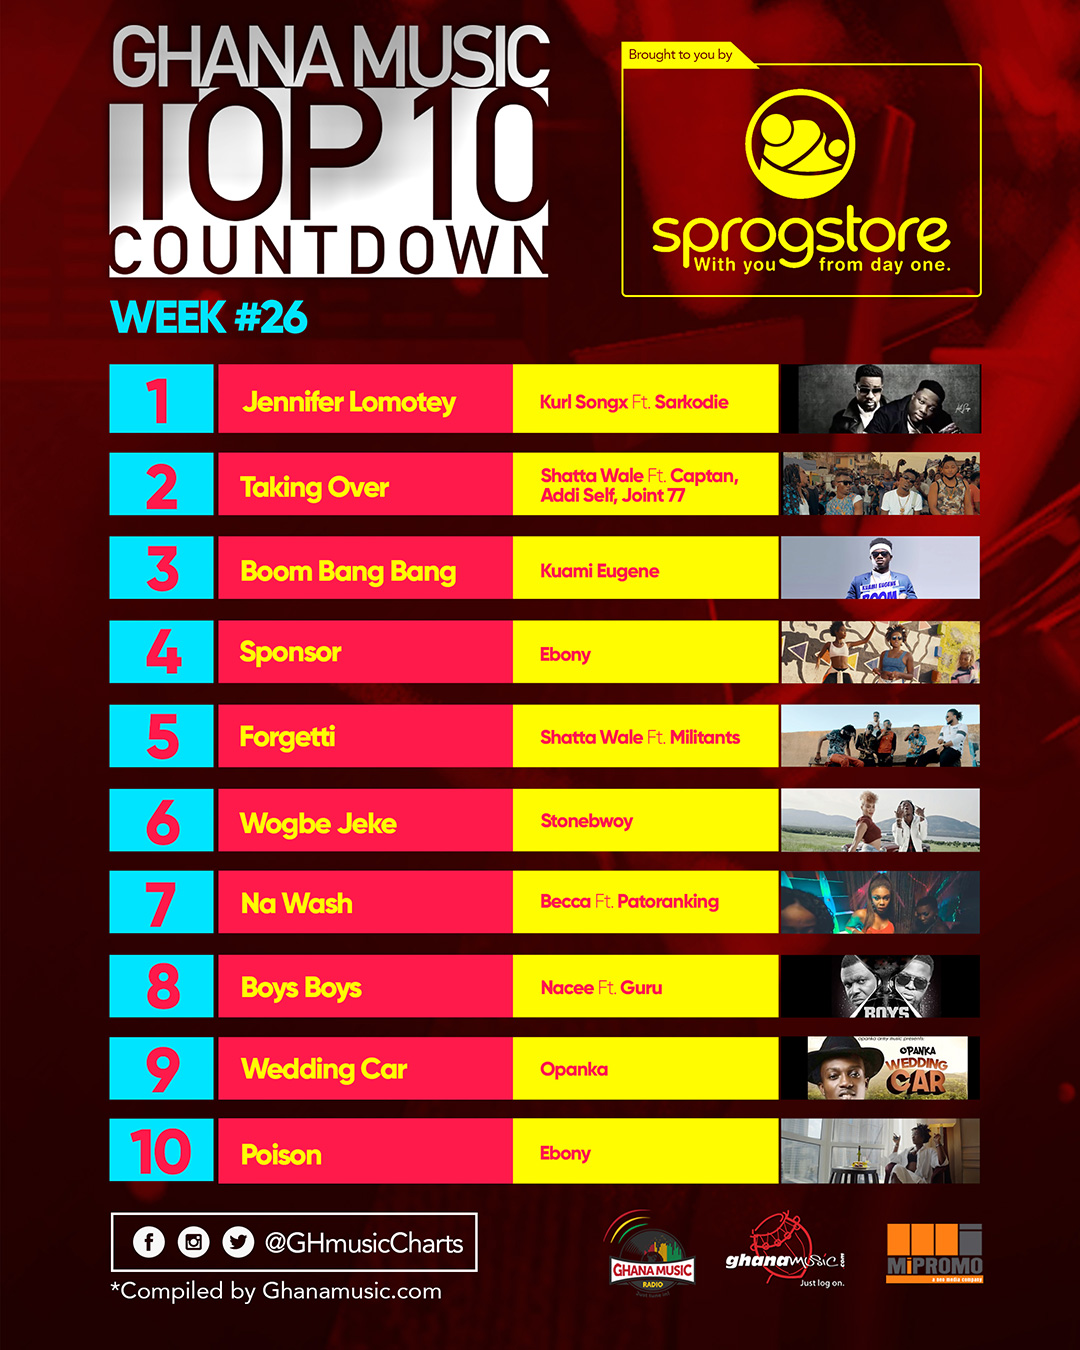 Week #26: Week ending Saturday, July 1st, 2017. Ghana Music Top 10 Countdown.